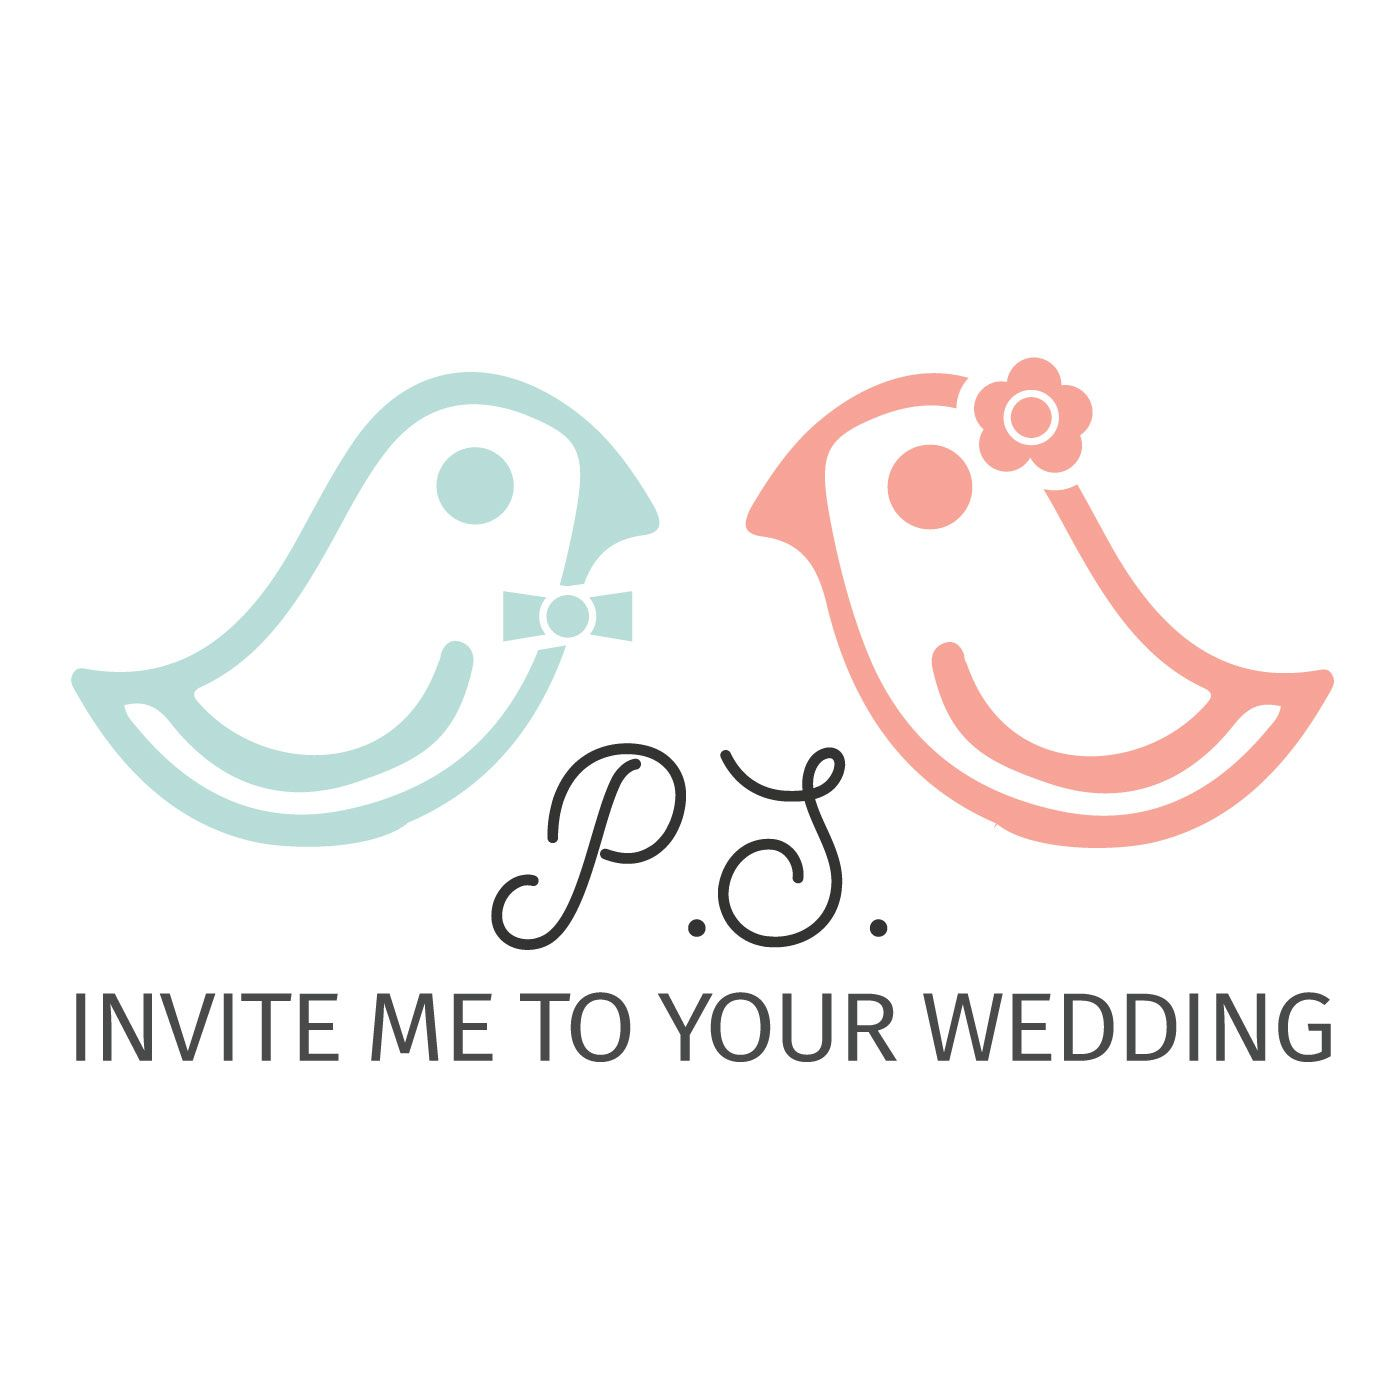 P.S. Invite Me to Your Wedding